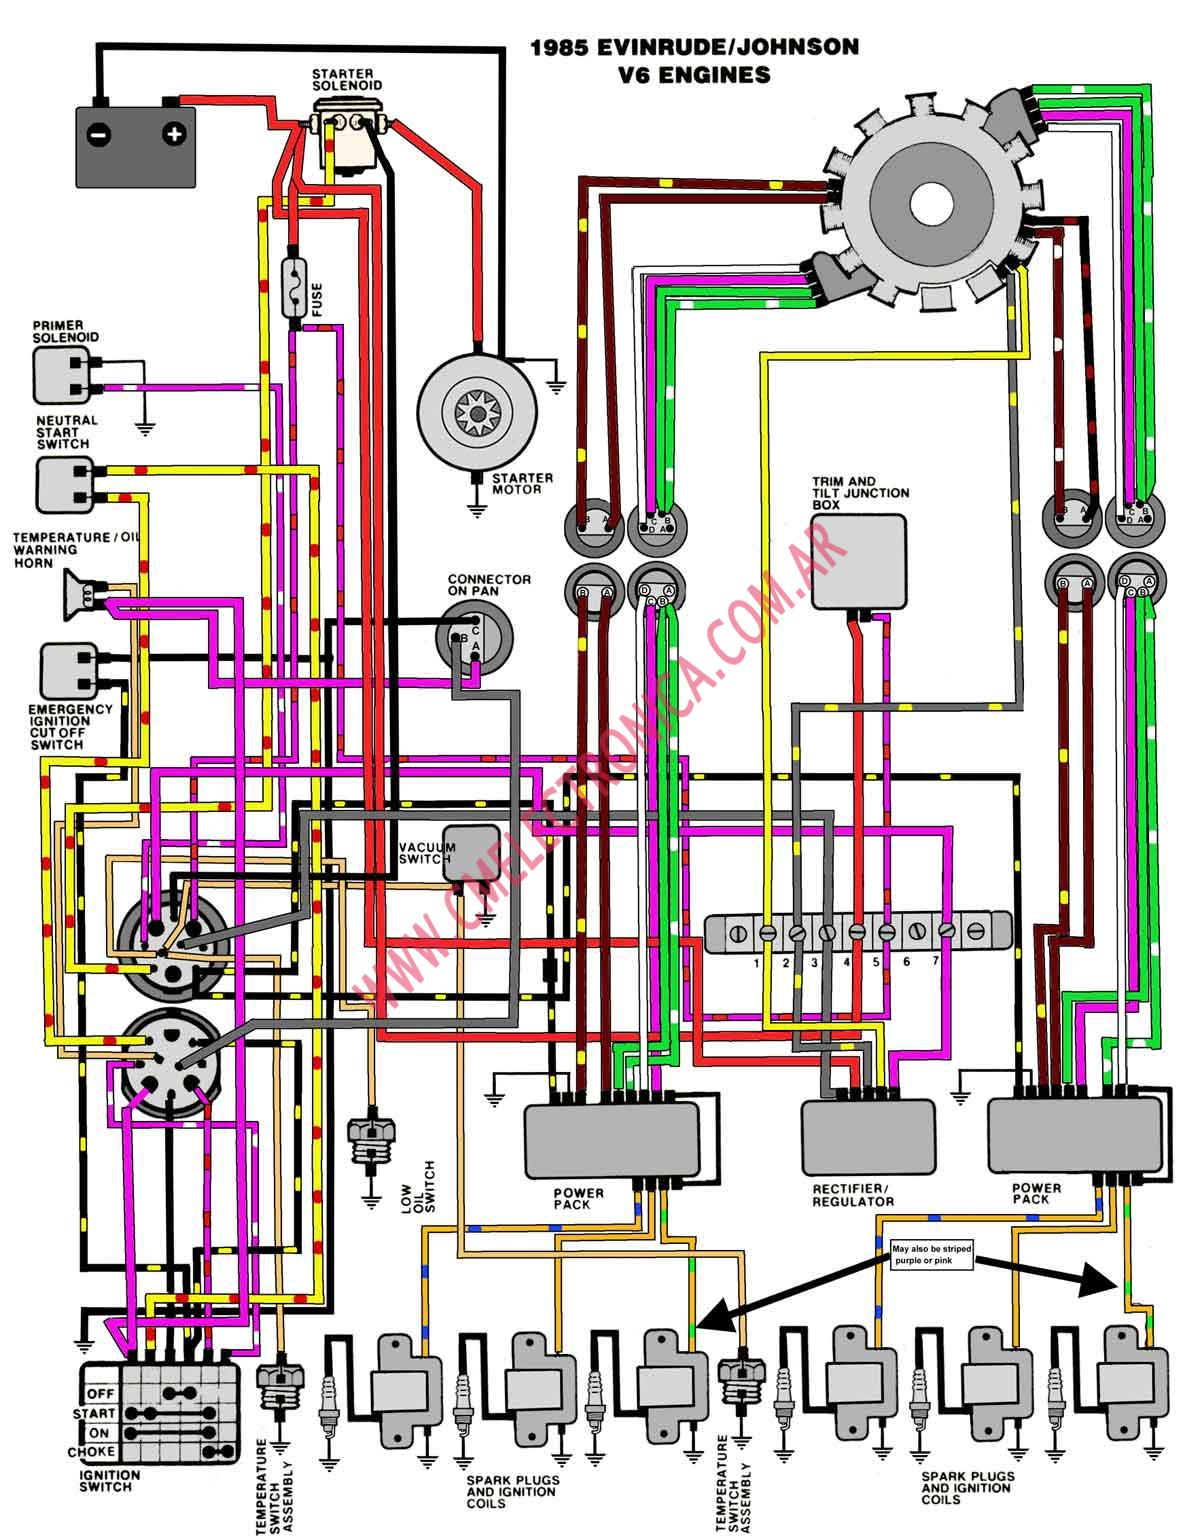 2002 evinrude 90 ficht wiring diagram chevrolet diagrama johnson 85 v6